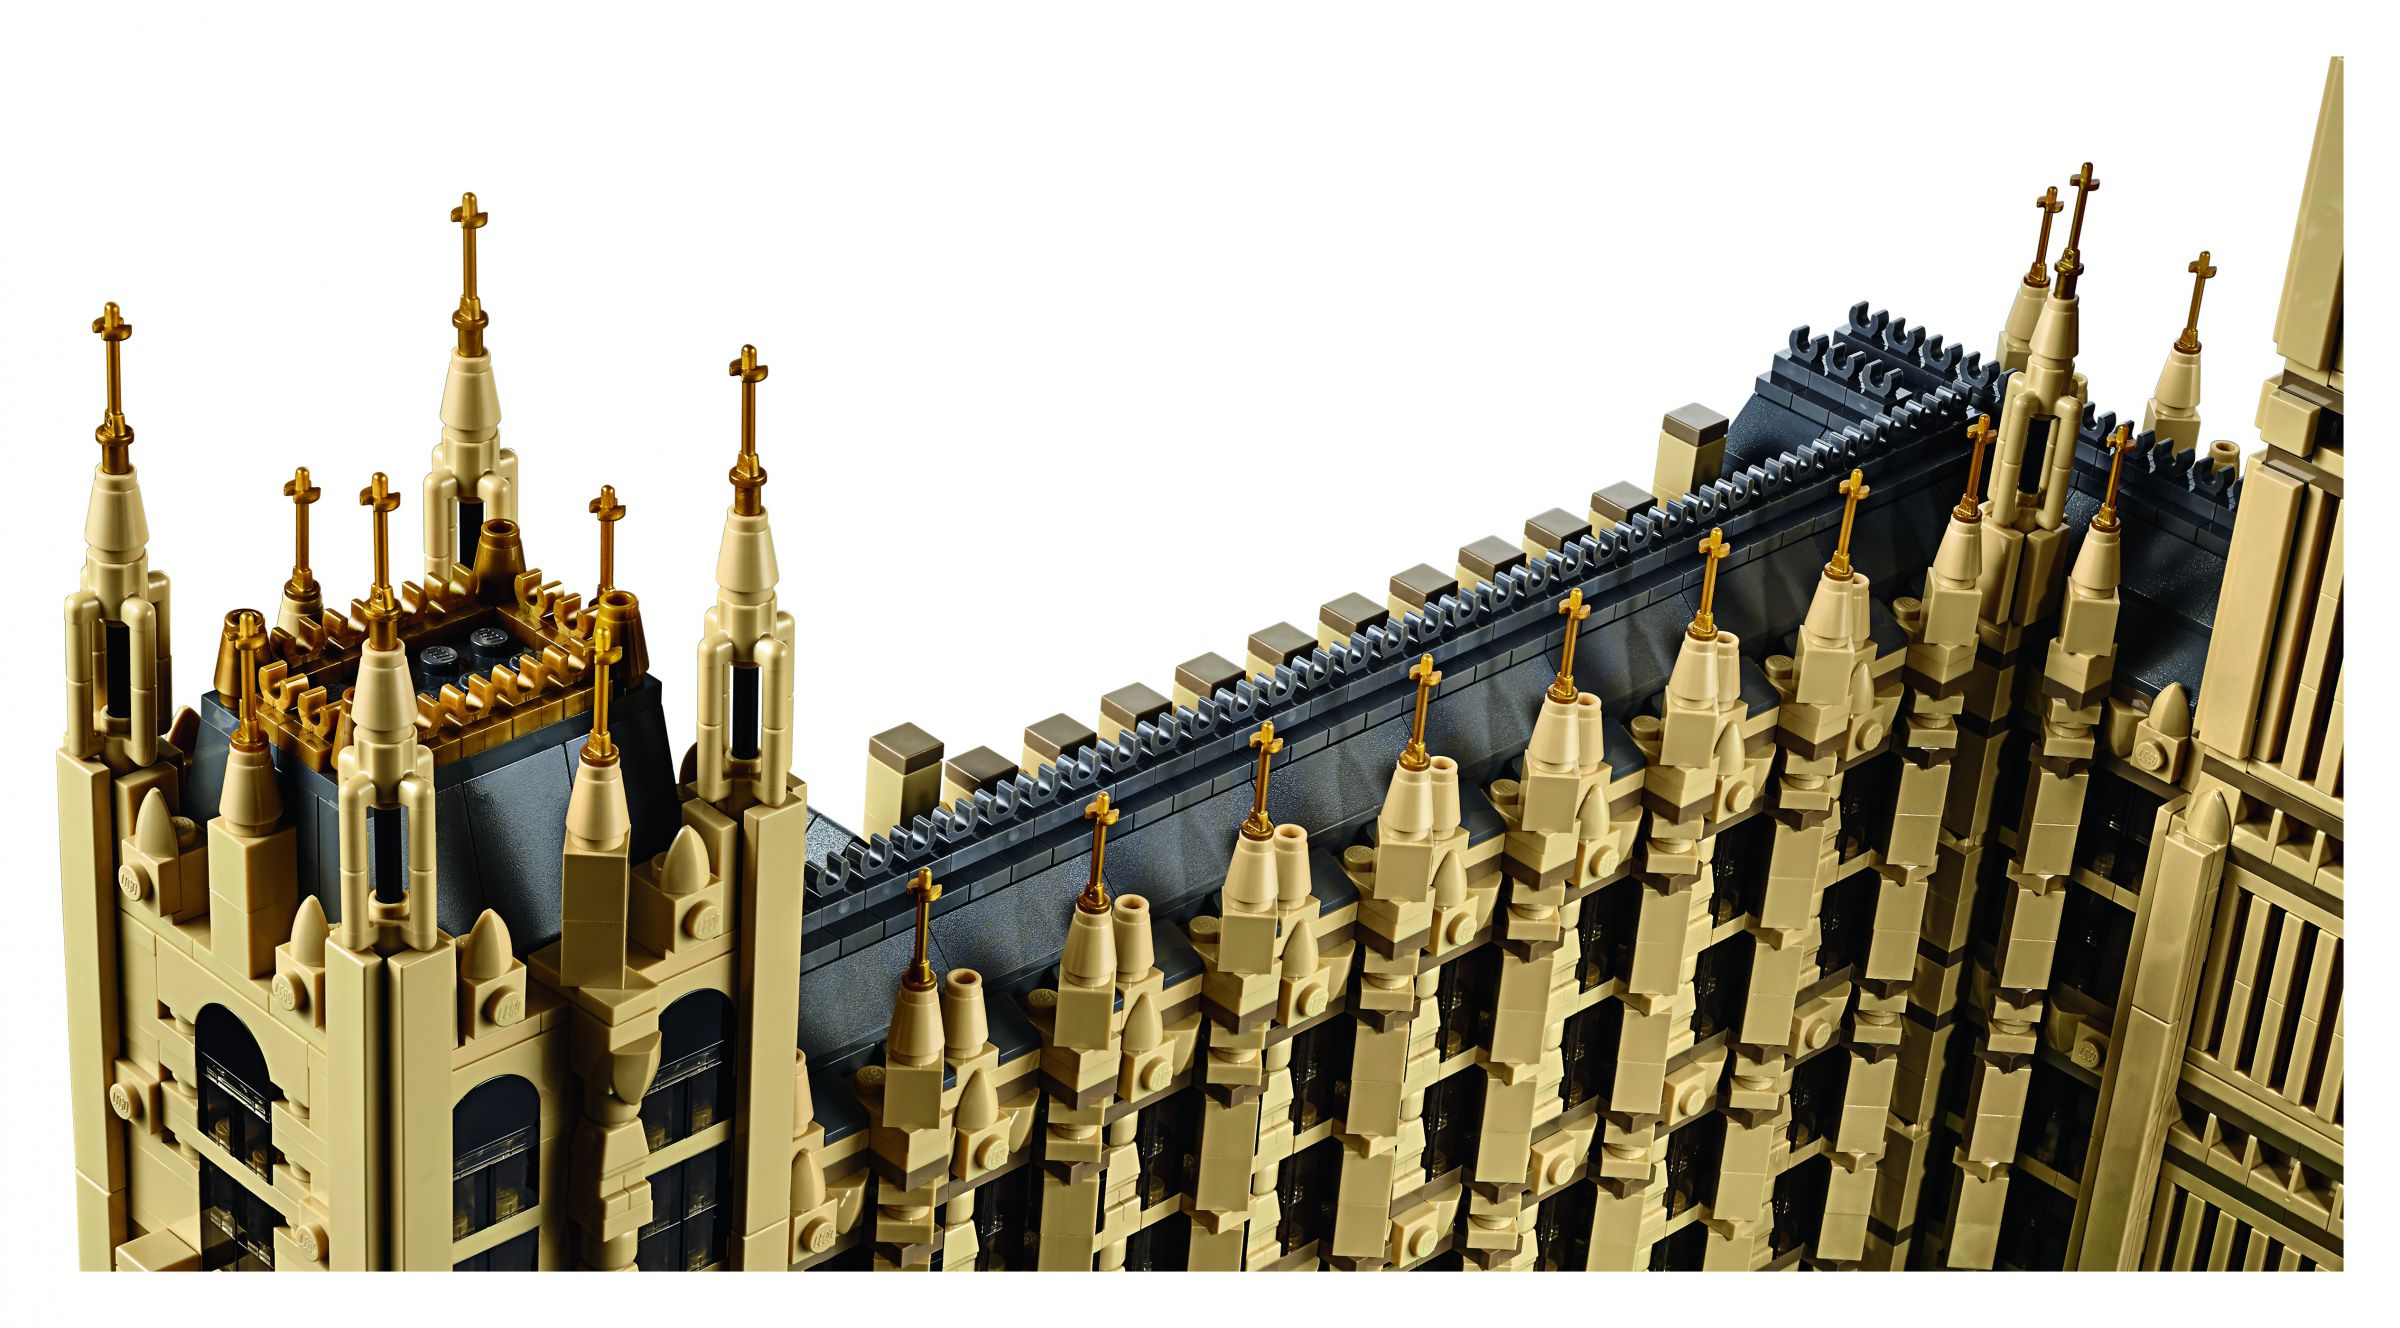 LEGO Advanced Models 10253 Big Ben LEGO_Creator_Big_Ben_10253-15.jpg